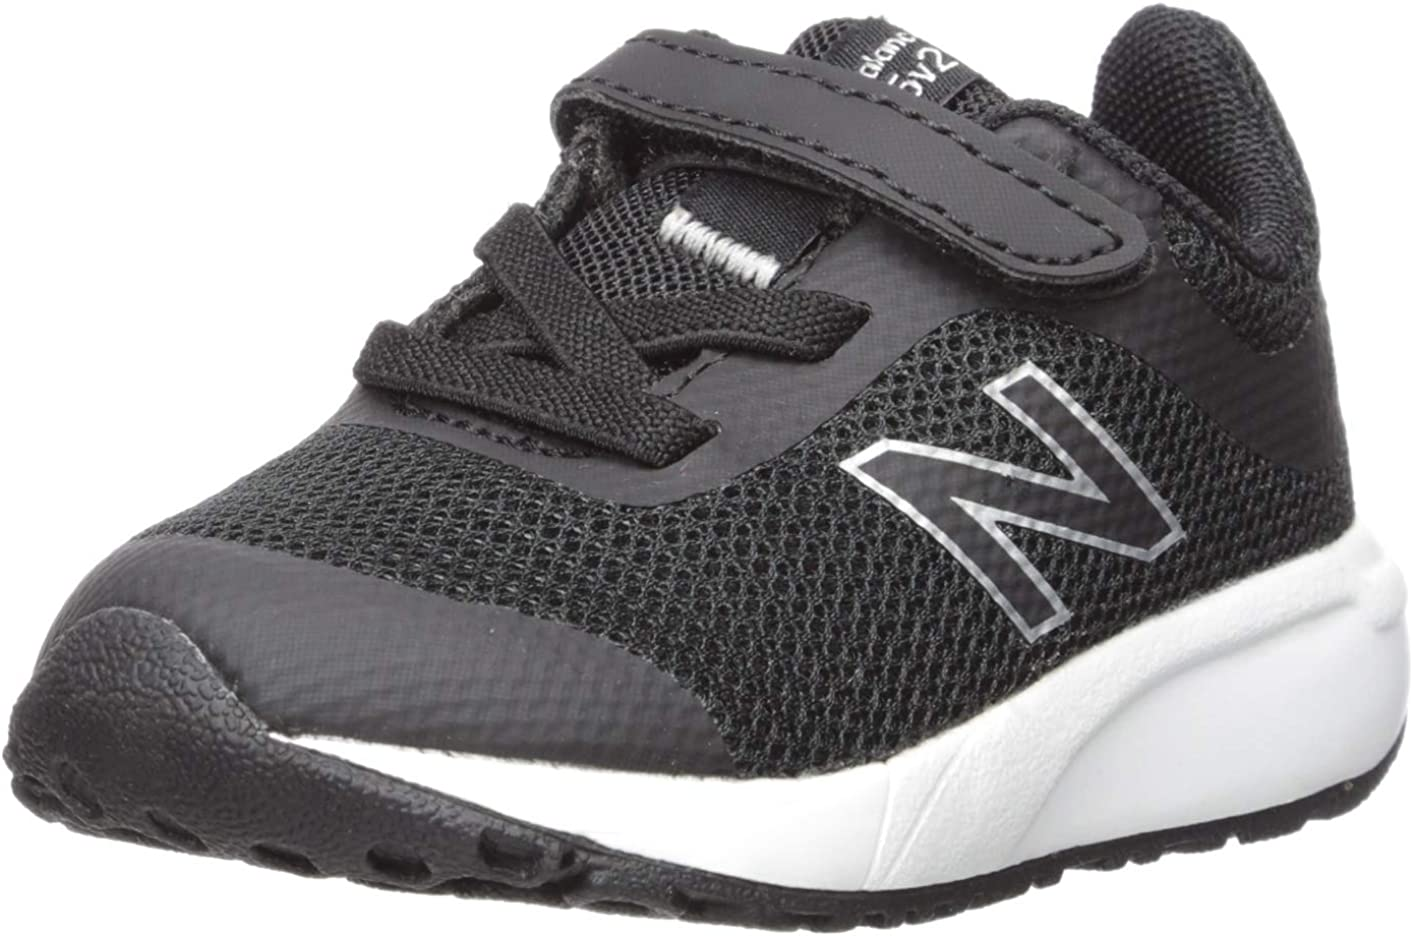 New Balance Unisex-Child 455v2 Max 63% OFF Hook Shoe Running safety Loop and